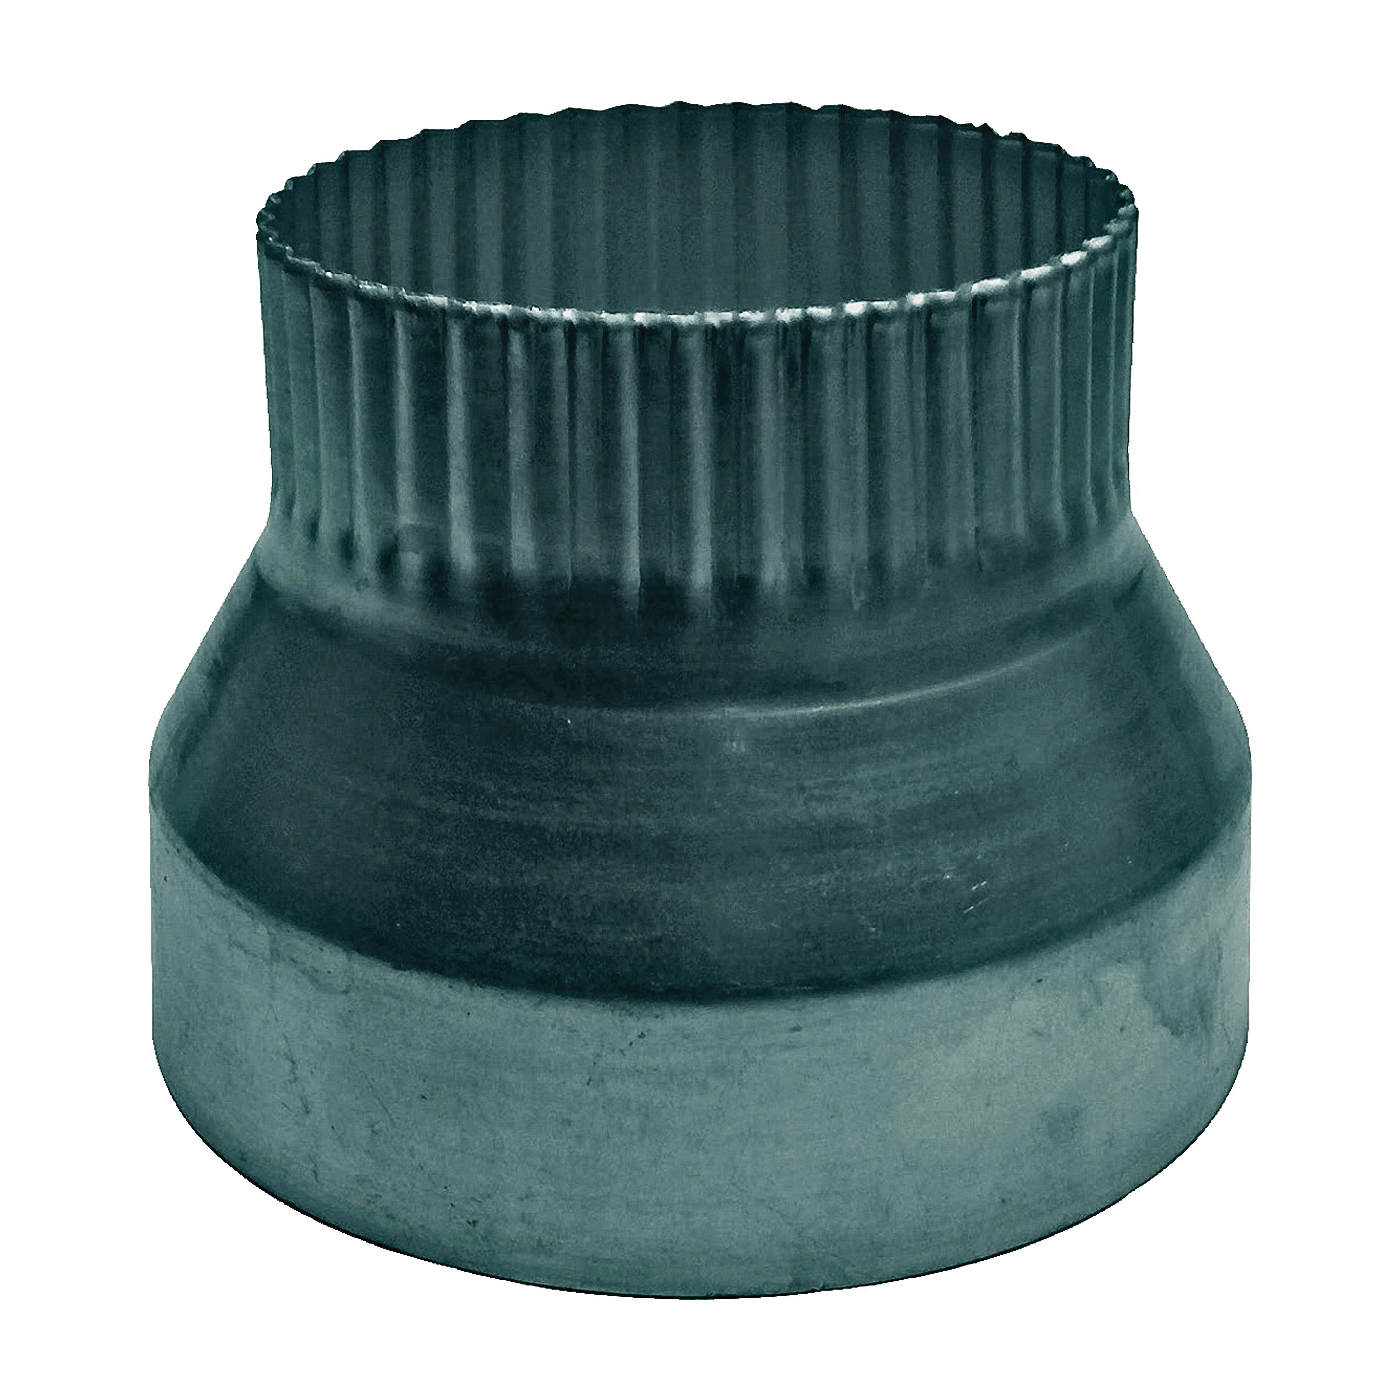 Picture of Lambro 251 Vent Reducer, 4 to 3 in Connection, Aluminum